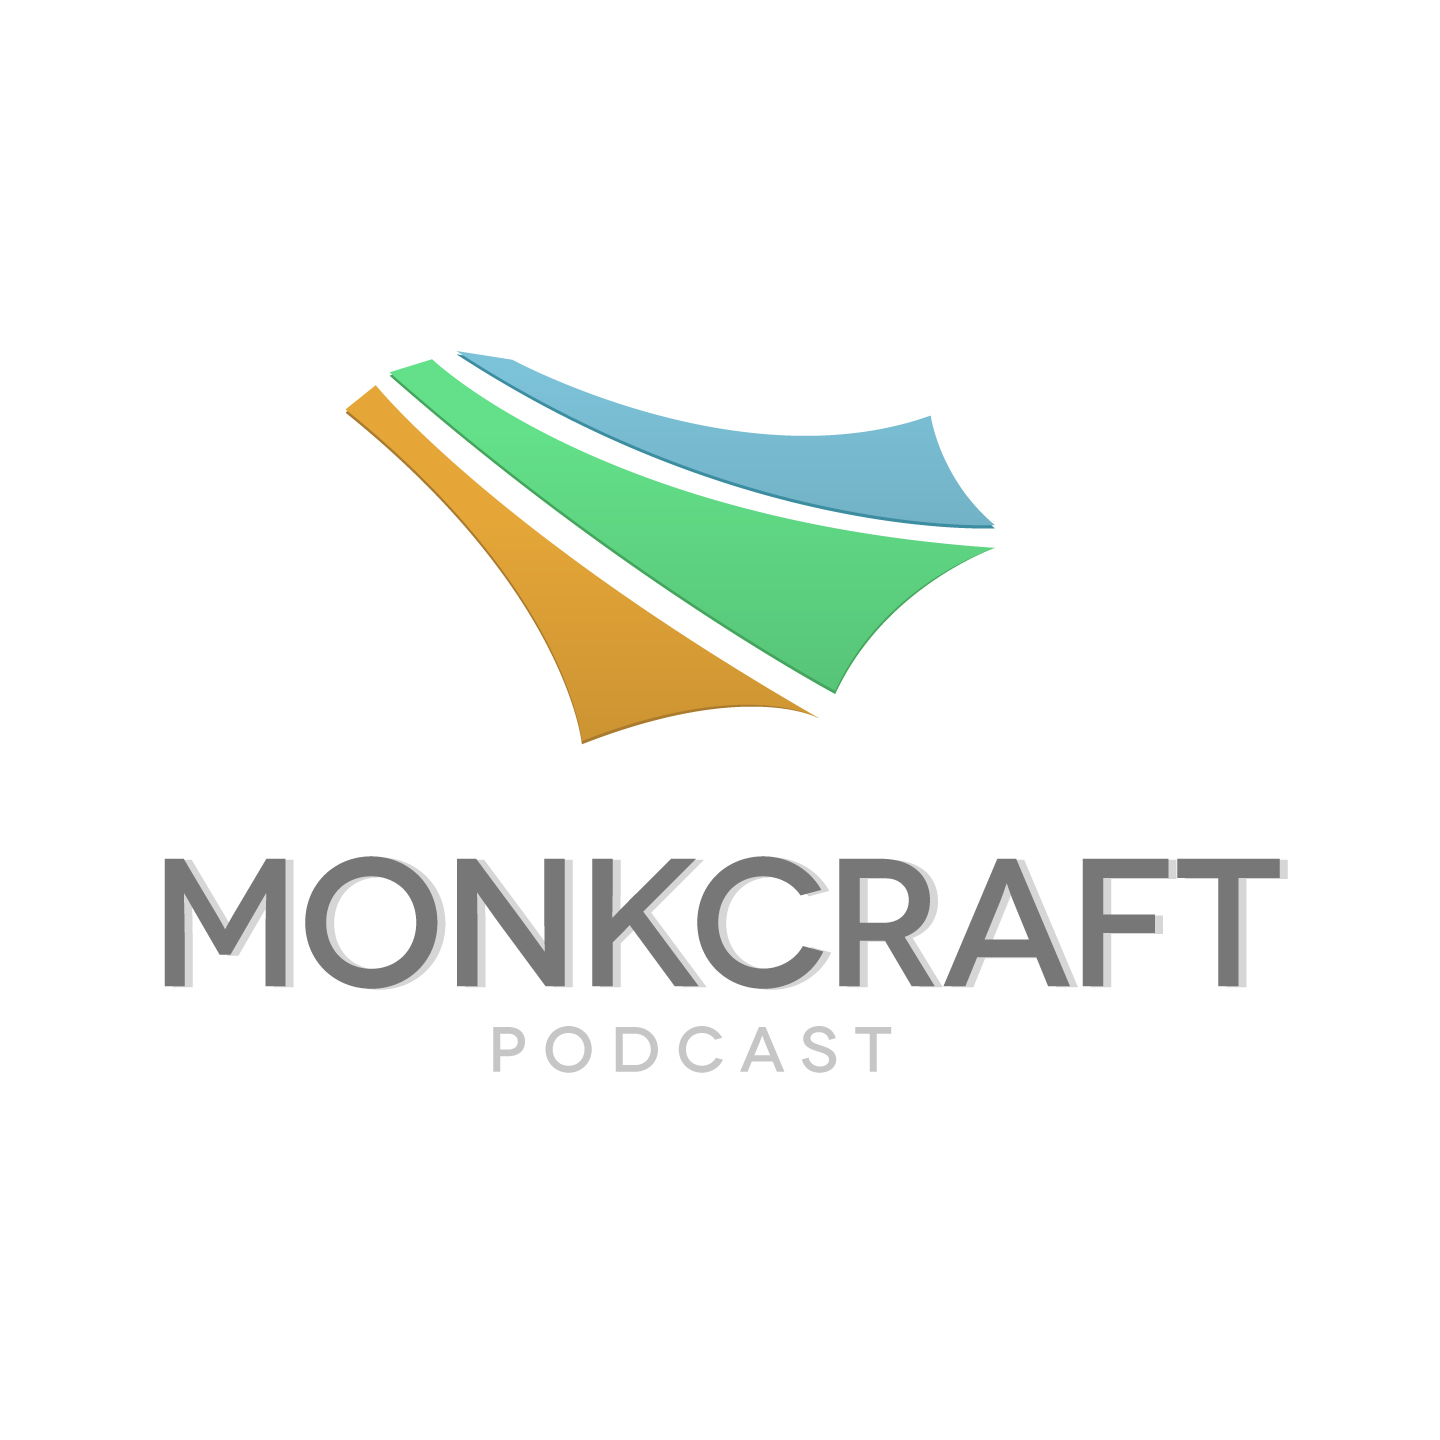 Monkcraft Podcast